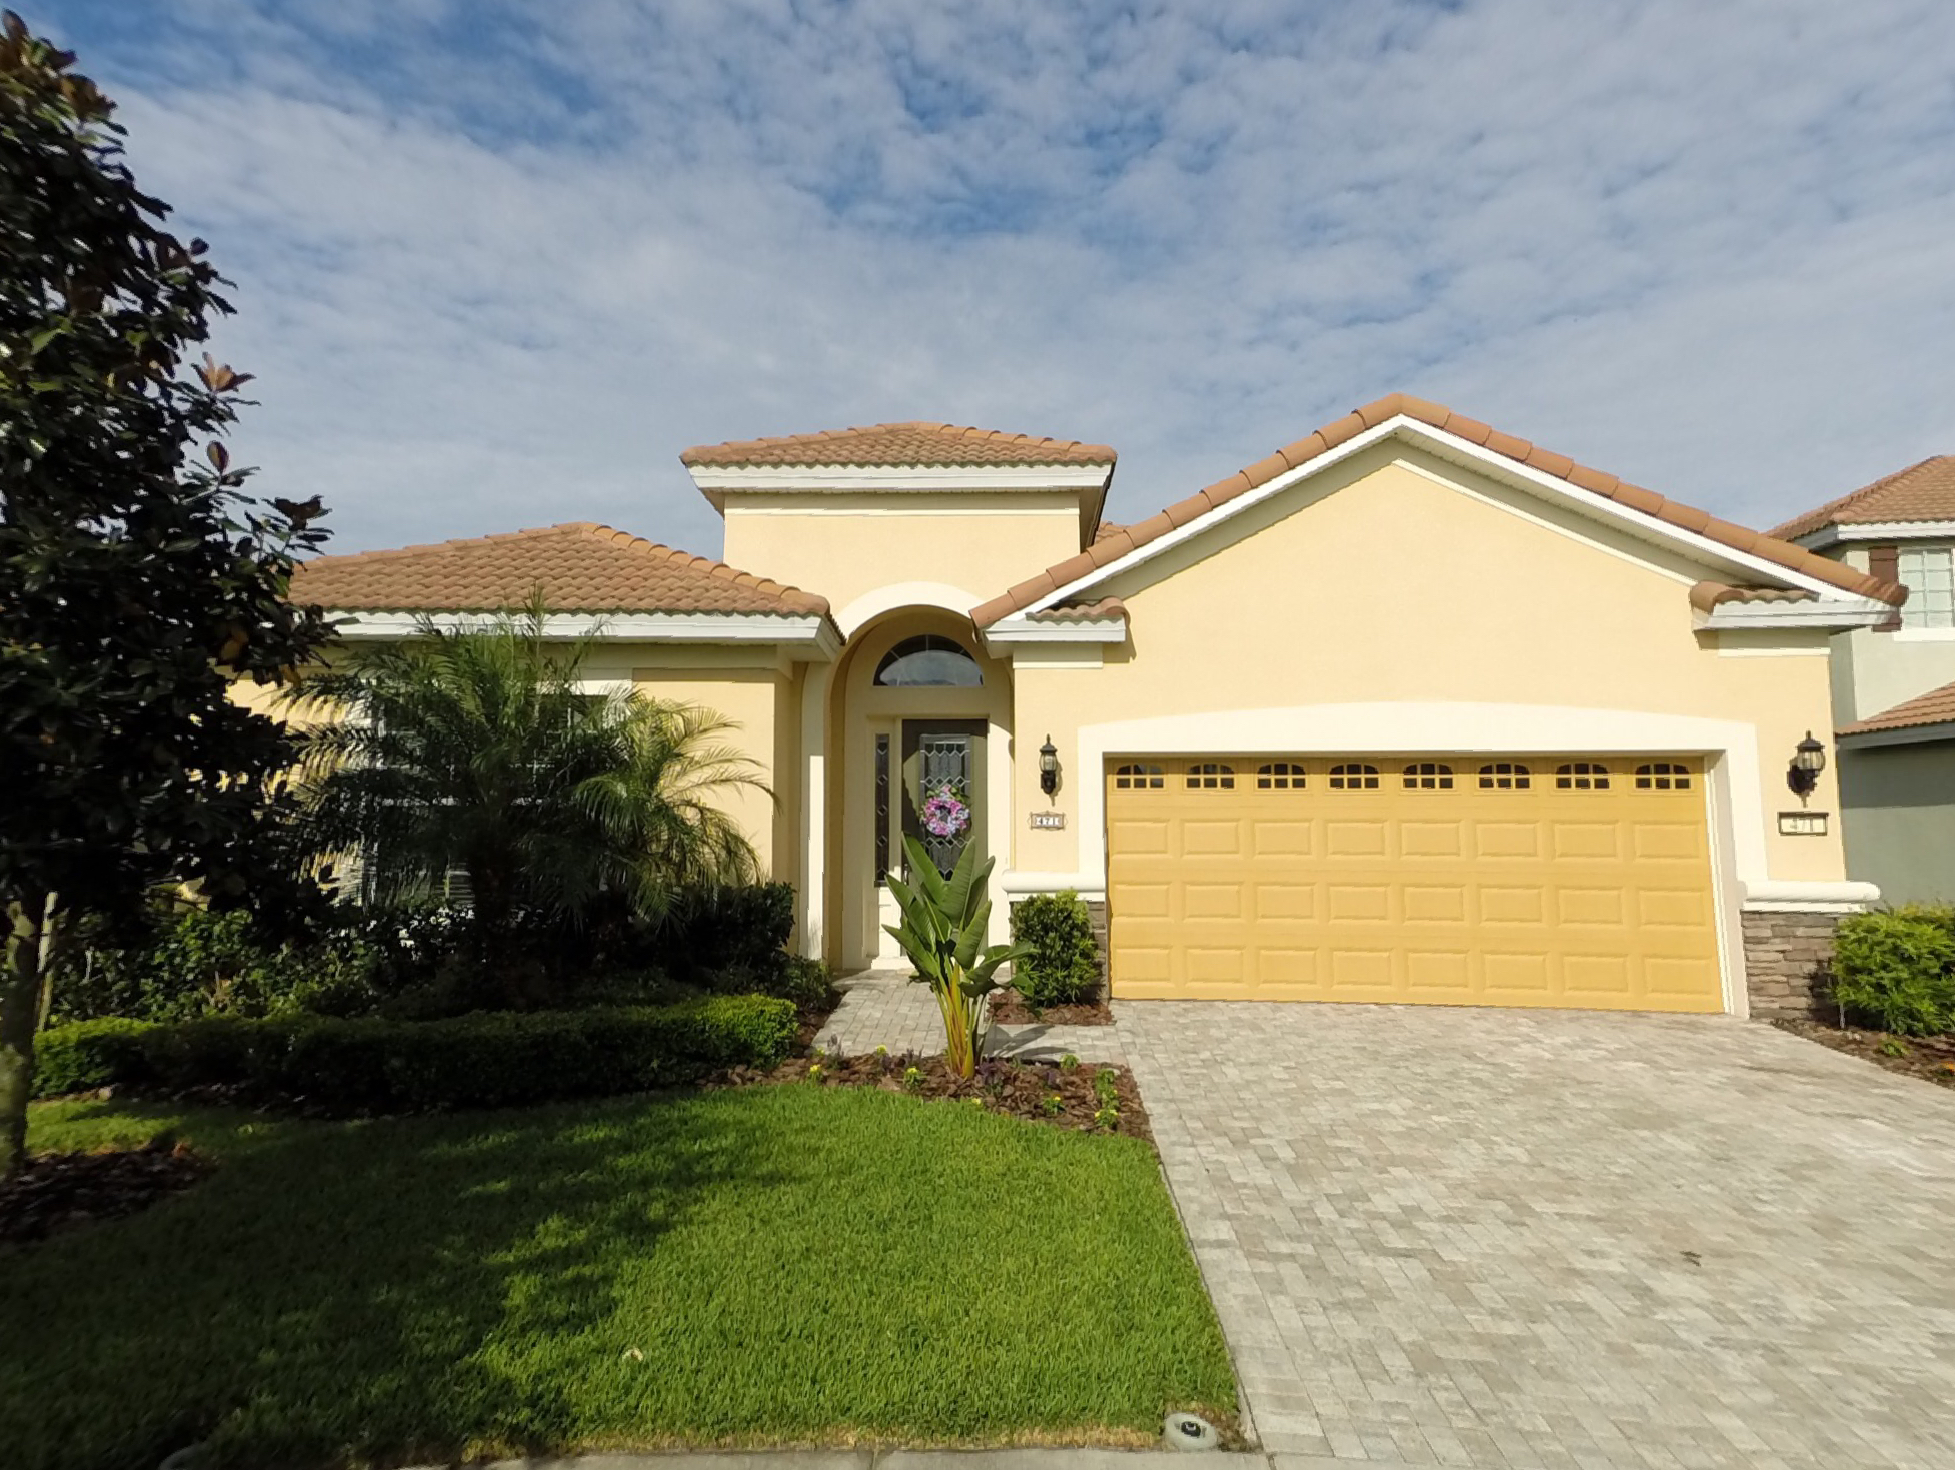 winter garden florida homes for sale search all winter garden florida homes for sale - Winter Garden Fl Zip Code